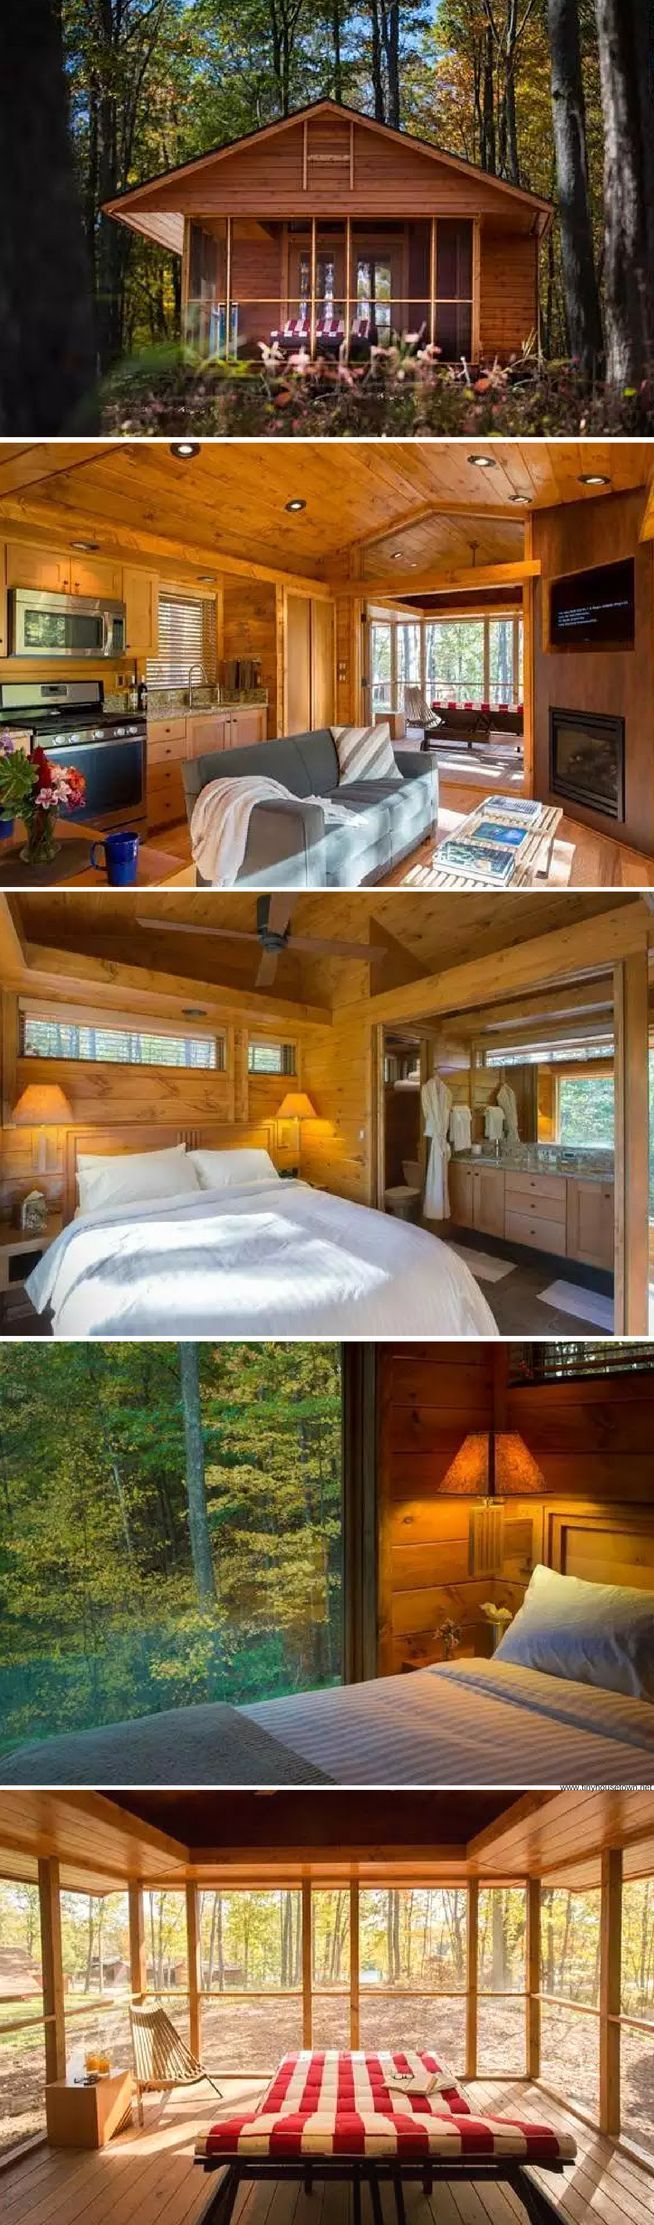 A cozy 392 sq ft cabin in upstate NY